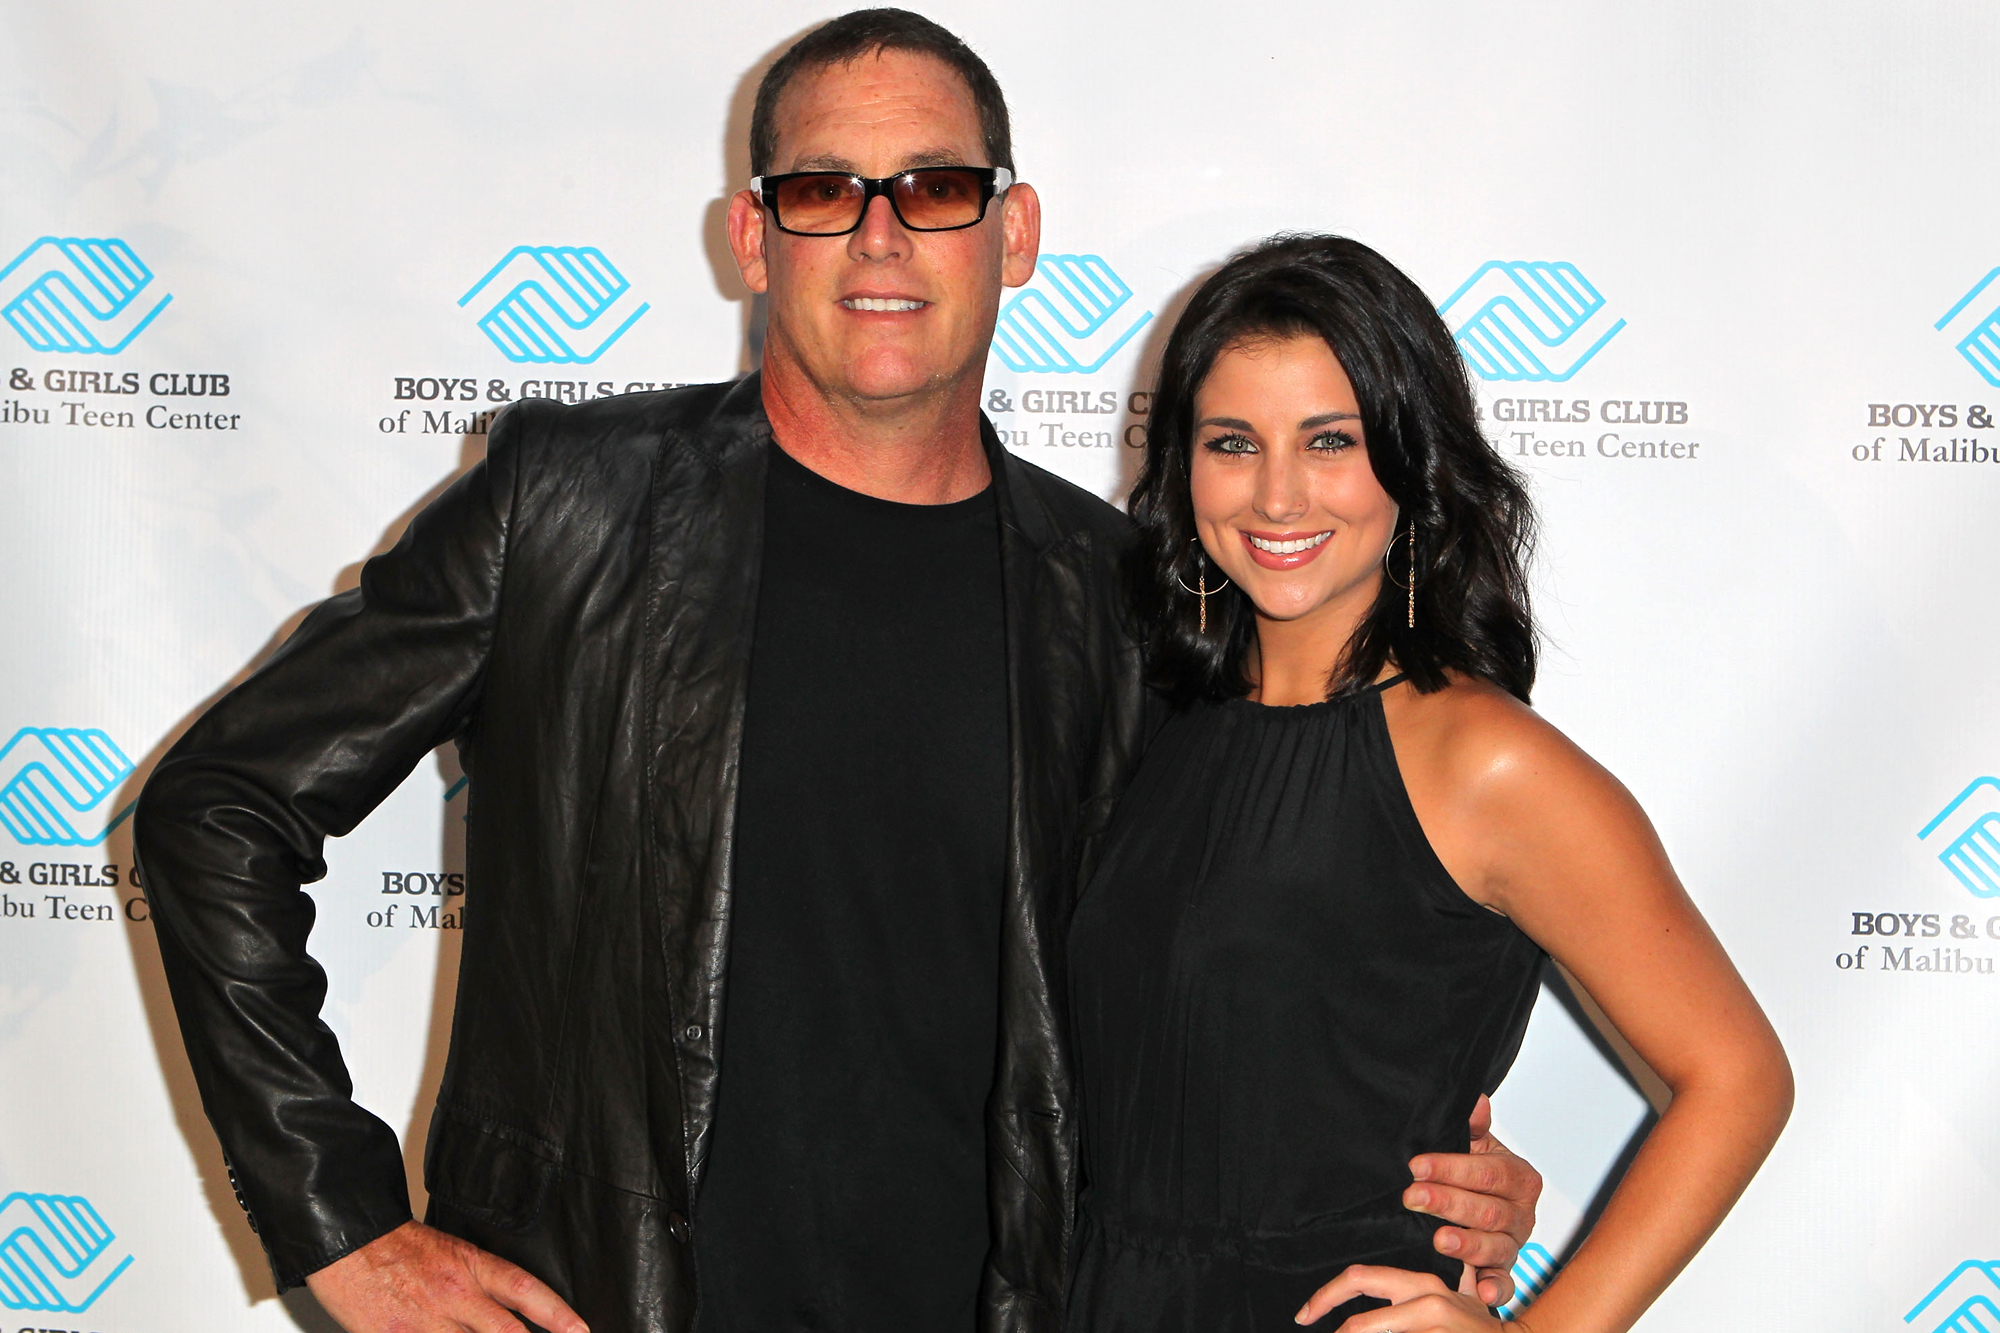 Mike Fleiss and Miss America 2012 Laura Kaeppeler